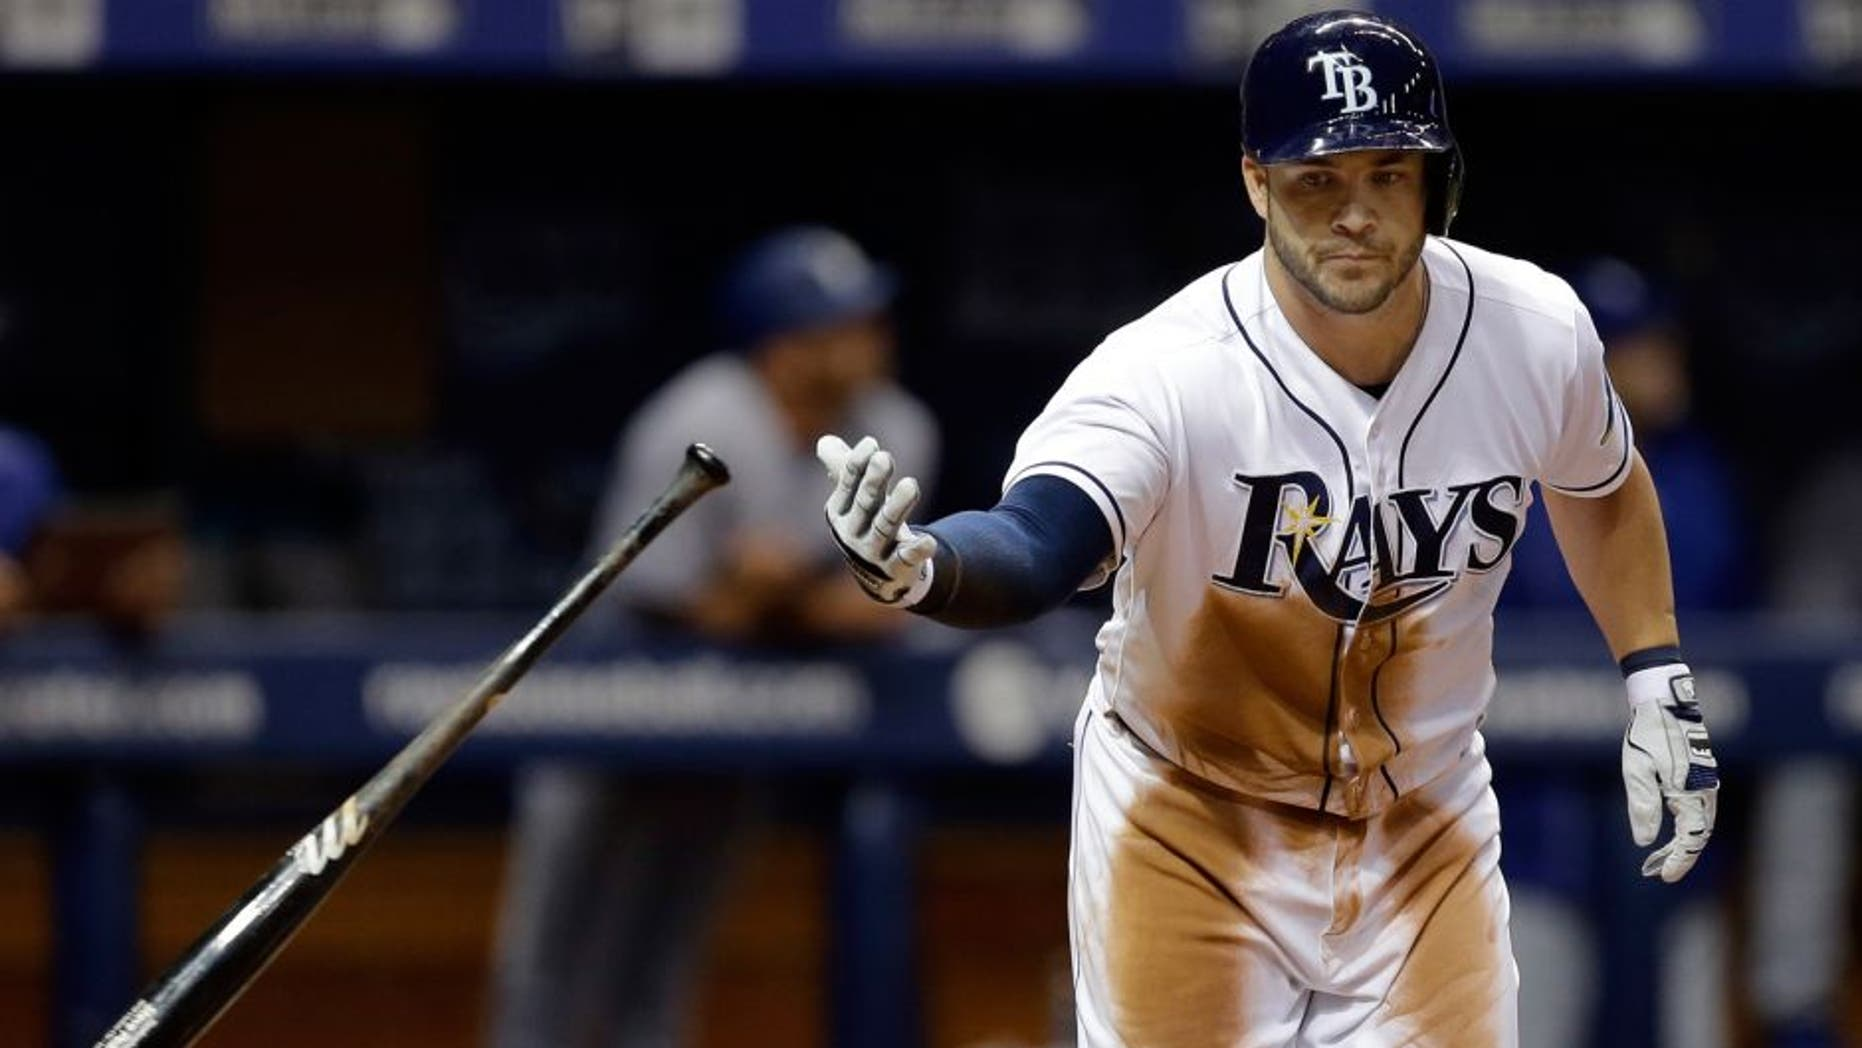 Tampa Bay Rays' Steve Pearce flips his bat after hitting a three-run home run off Los Angeles Dodgers starting pitcher Alex Wood during the sixth inning of an interleague baseball game Wednesday, May 4, 2016, in St. Petersburg, Fla. Rays' Brandon Guyer and Evan Longoria also scored. (AP Photo/Chris O'Meara)